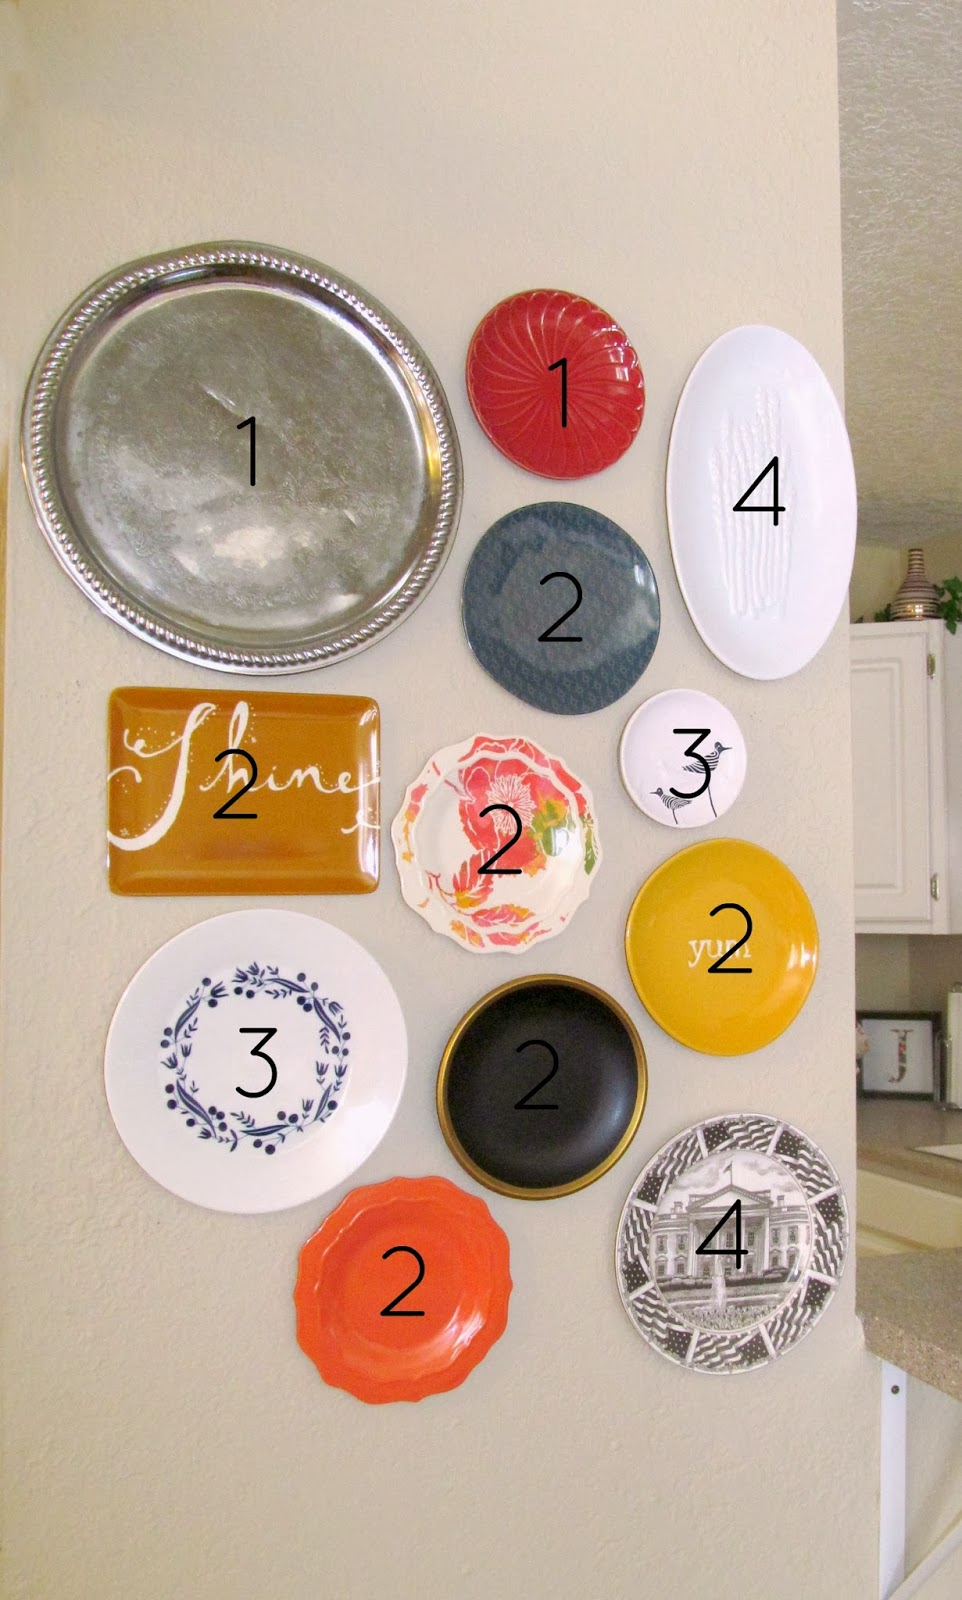 How to Collect Plates to Make a Plate Wall